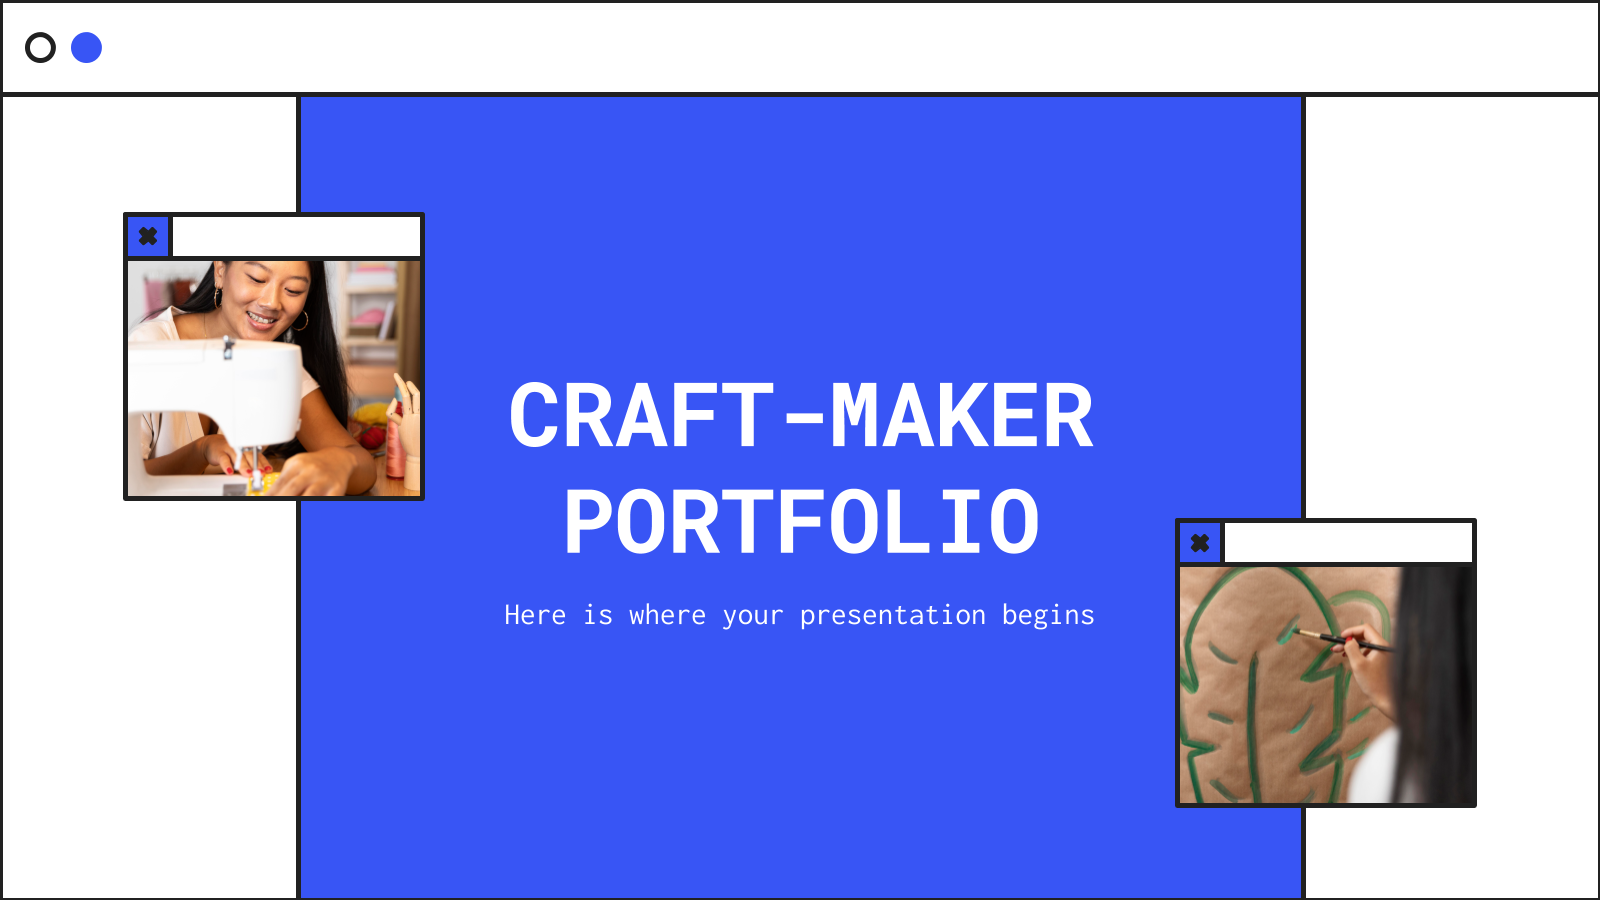 Craft-Maker Portfolio presentation template